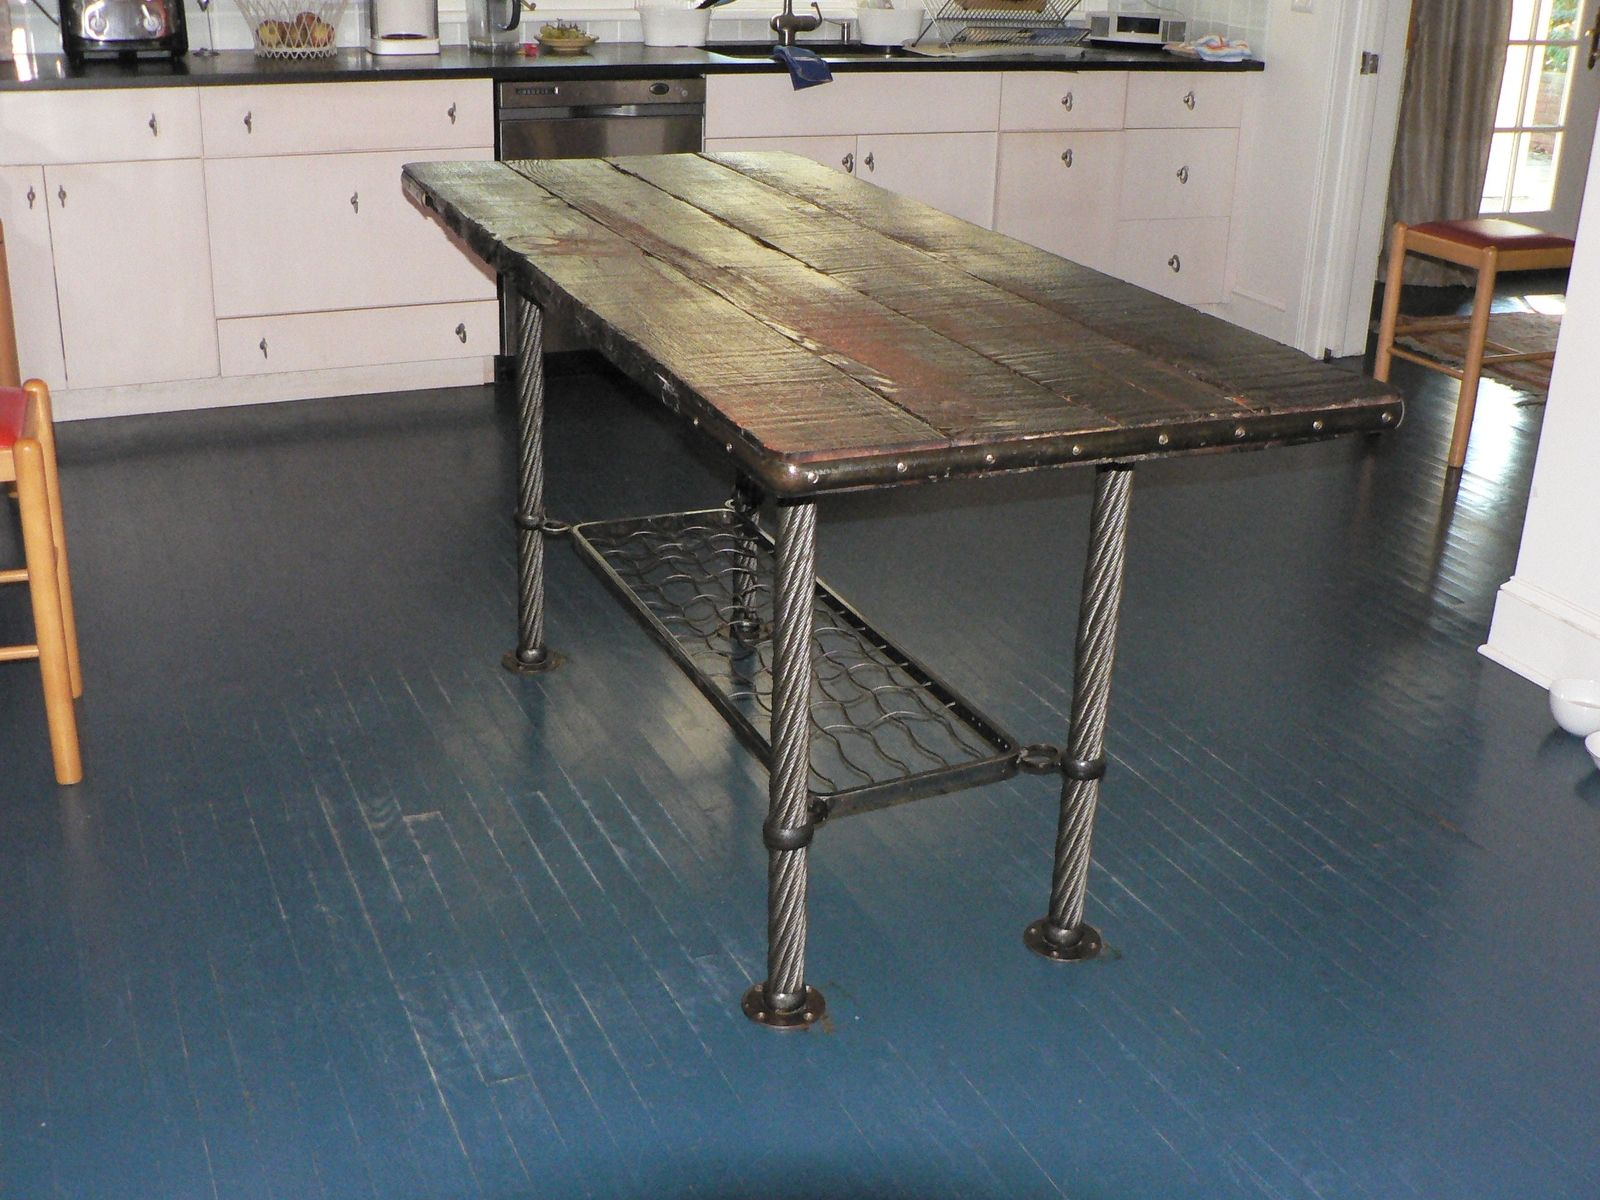 Hand Crafted OBrien Kitchen Table By Modern Metal Work Llc - Small metal work table